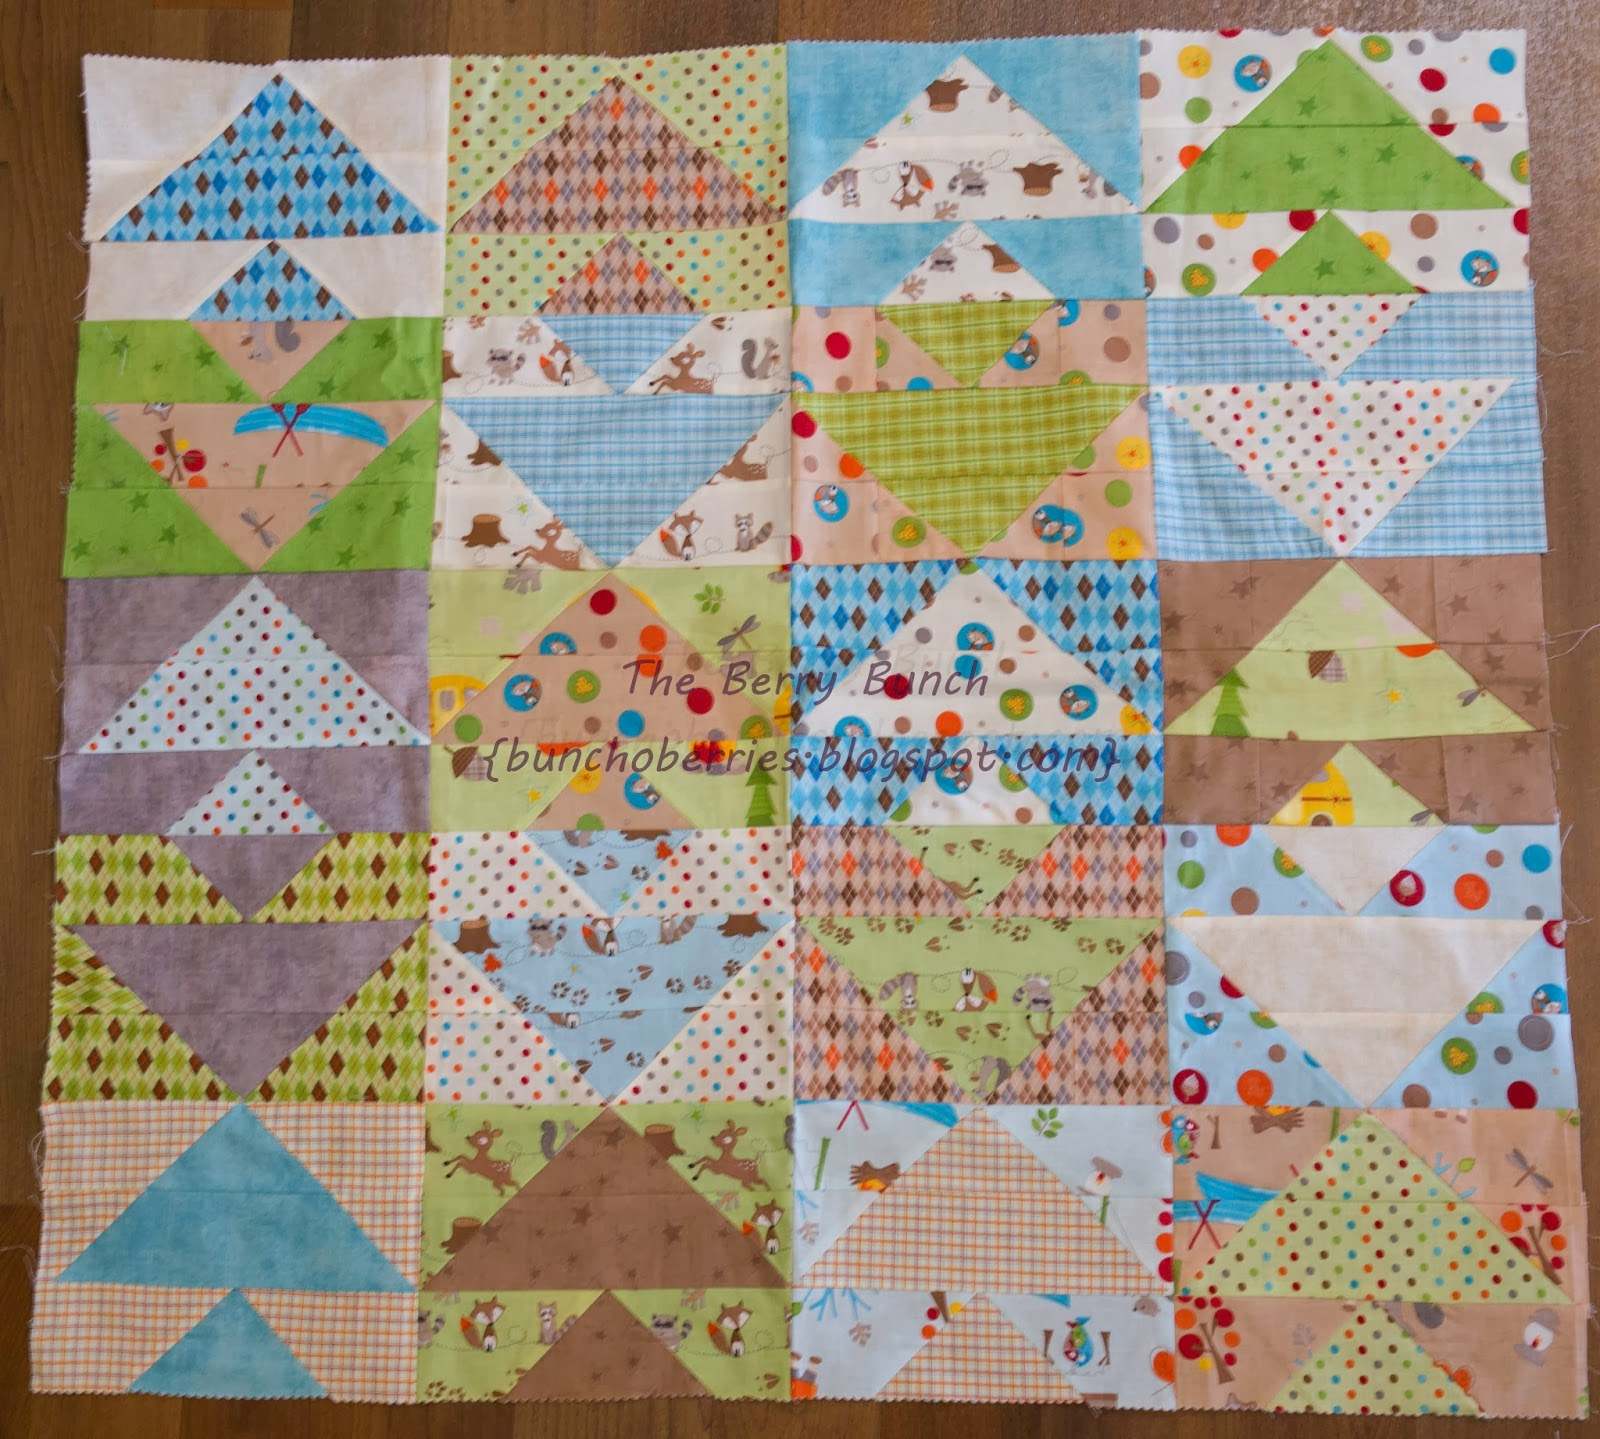 The Berry Bunch: 2015 Finish-A-Long: Jelly Roll Quilt